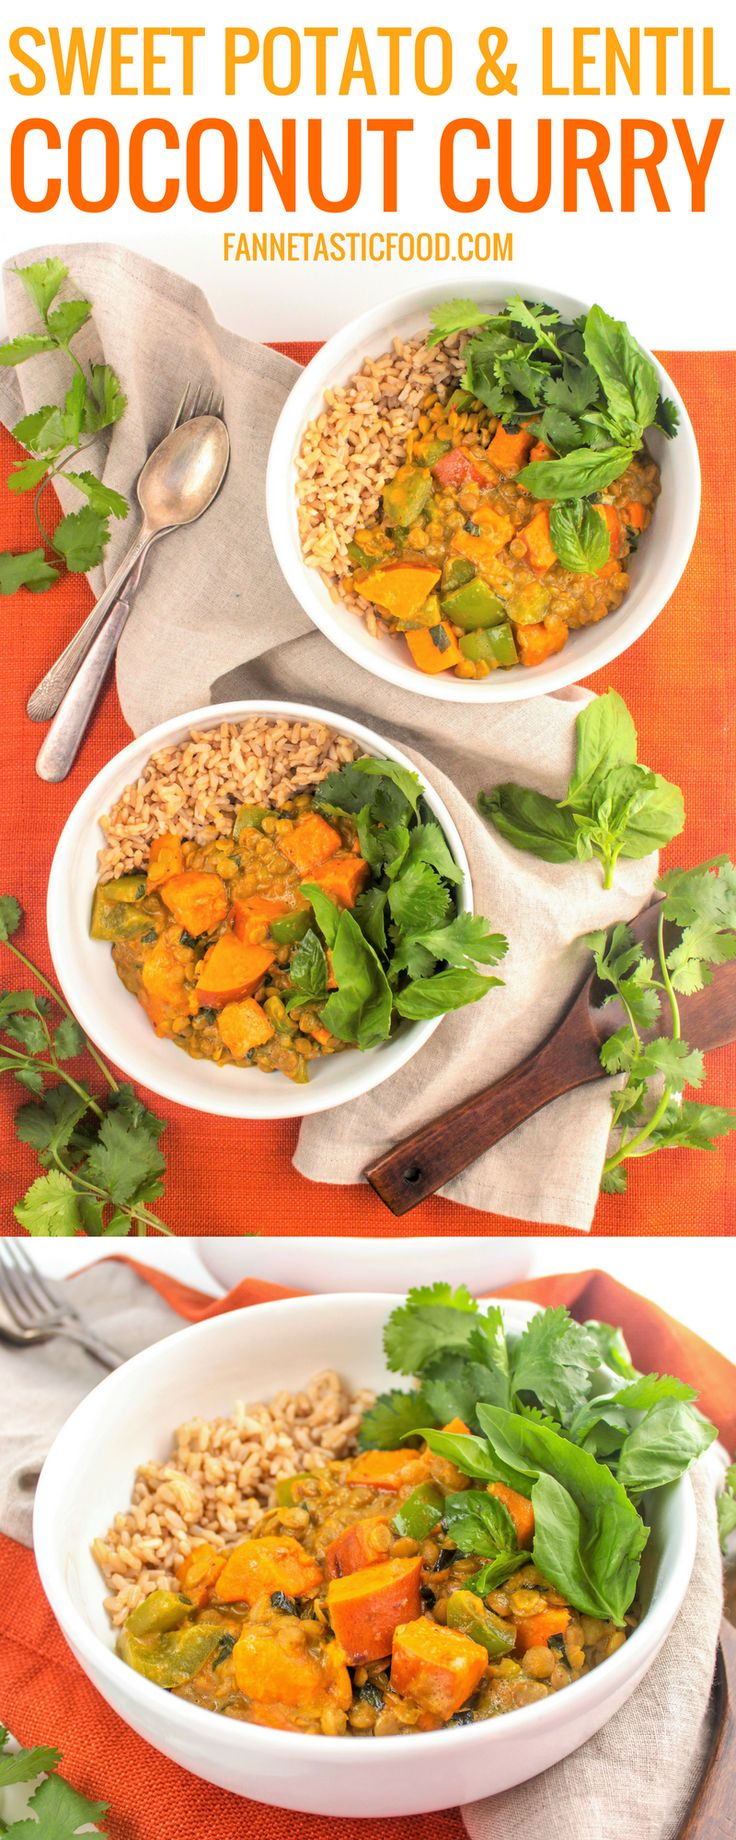 This Sweet Potato & Lentil Coconut Curry is quick and easy, packed with flavor, and vegan! Perfect for a balanced weeknight meal that's ready in no time. #curry #onepotmeal #dinner #healthyrecipes